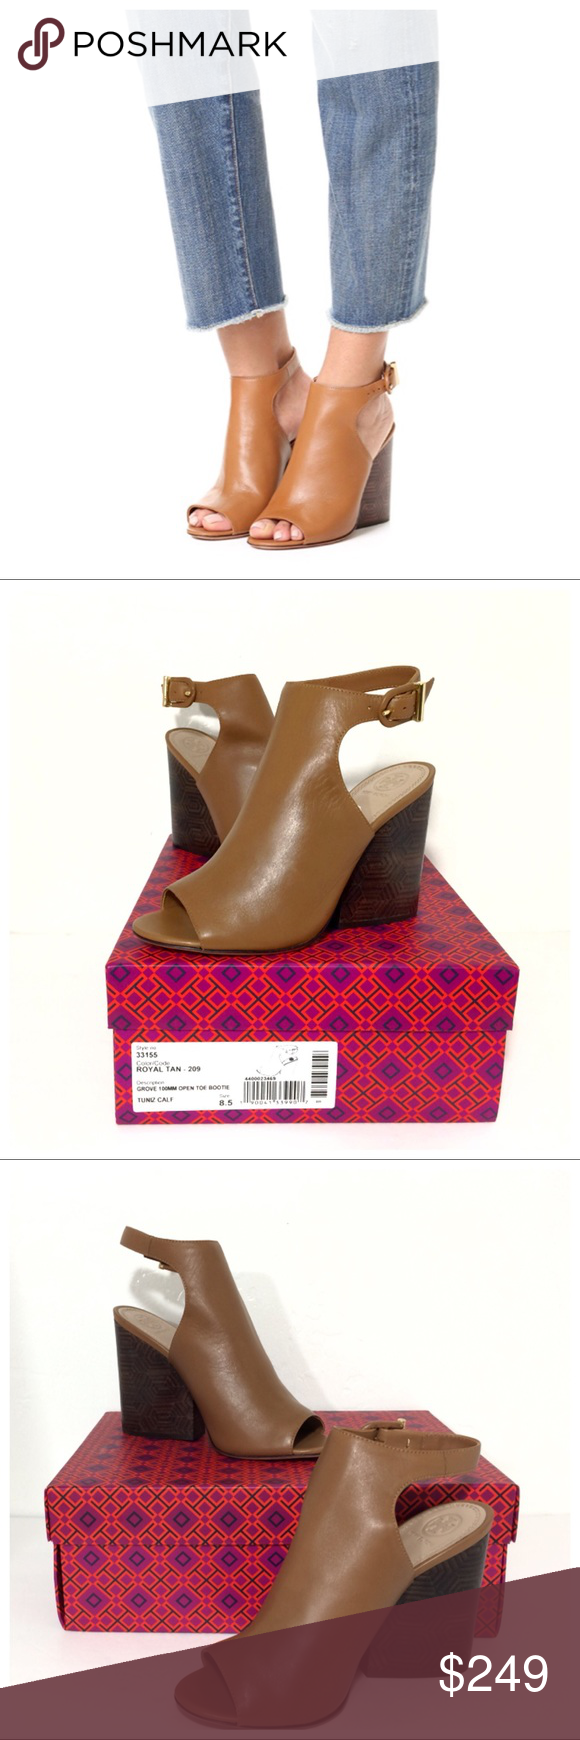 3ea85153e18f NIB Tory Burch Groove Peep Toe Leather Ankle Boots Brand new in box  gorgeous   trendy